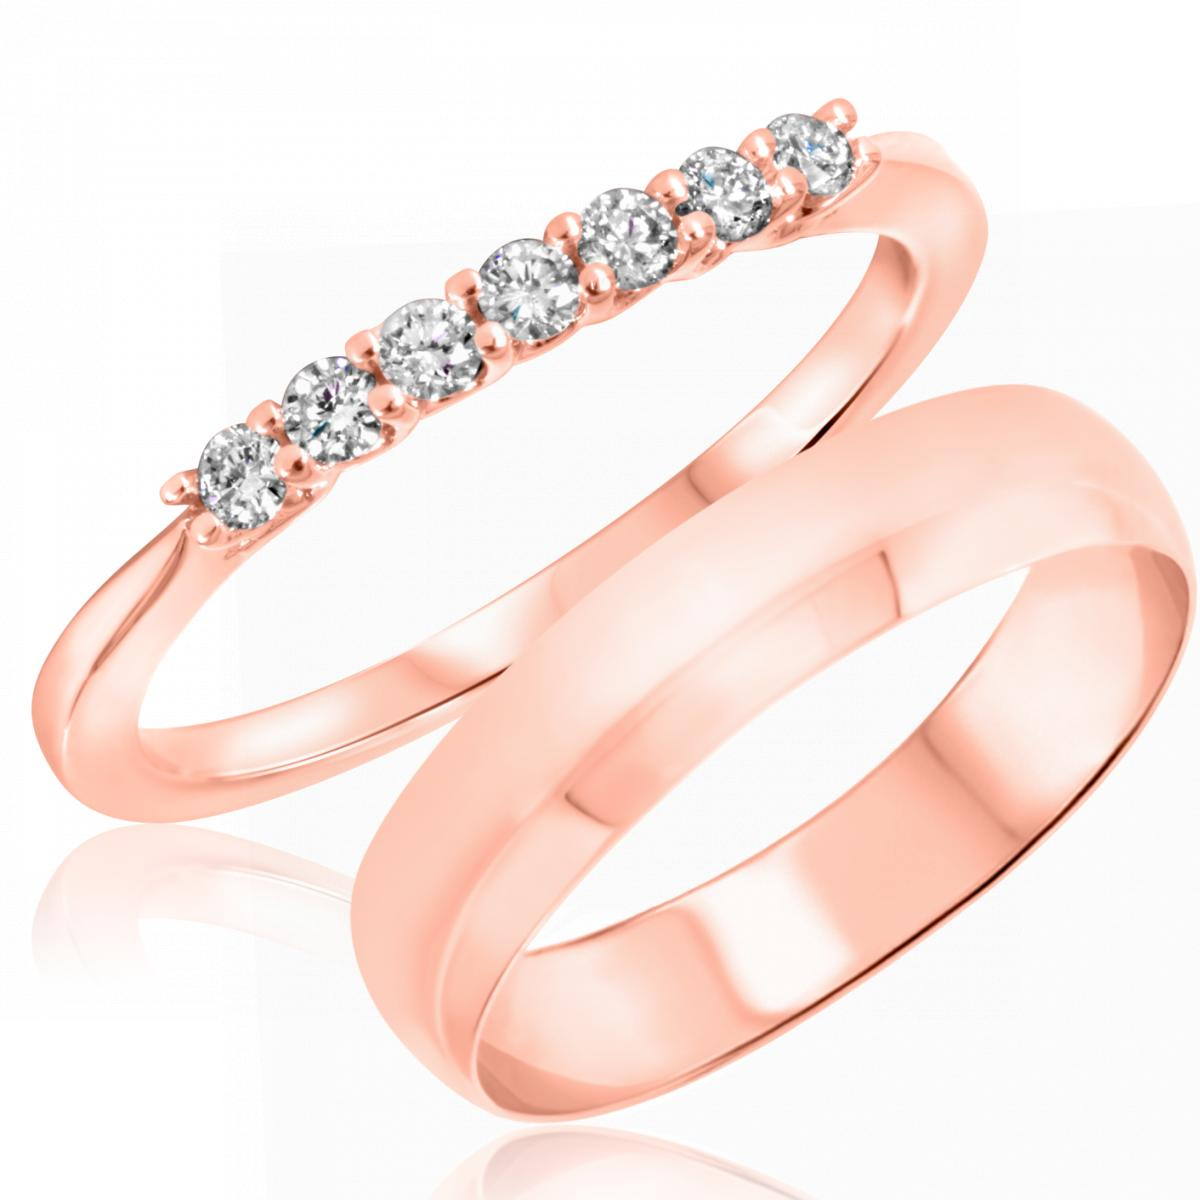 1/5 Carat T.W. Round Cut Diamond His and Hers Wedding Band Set 10K Rose Gold